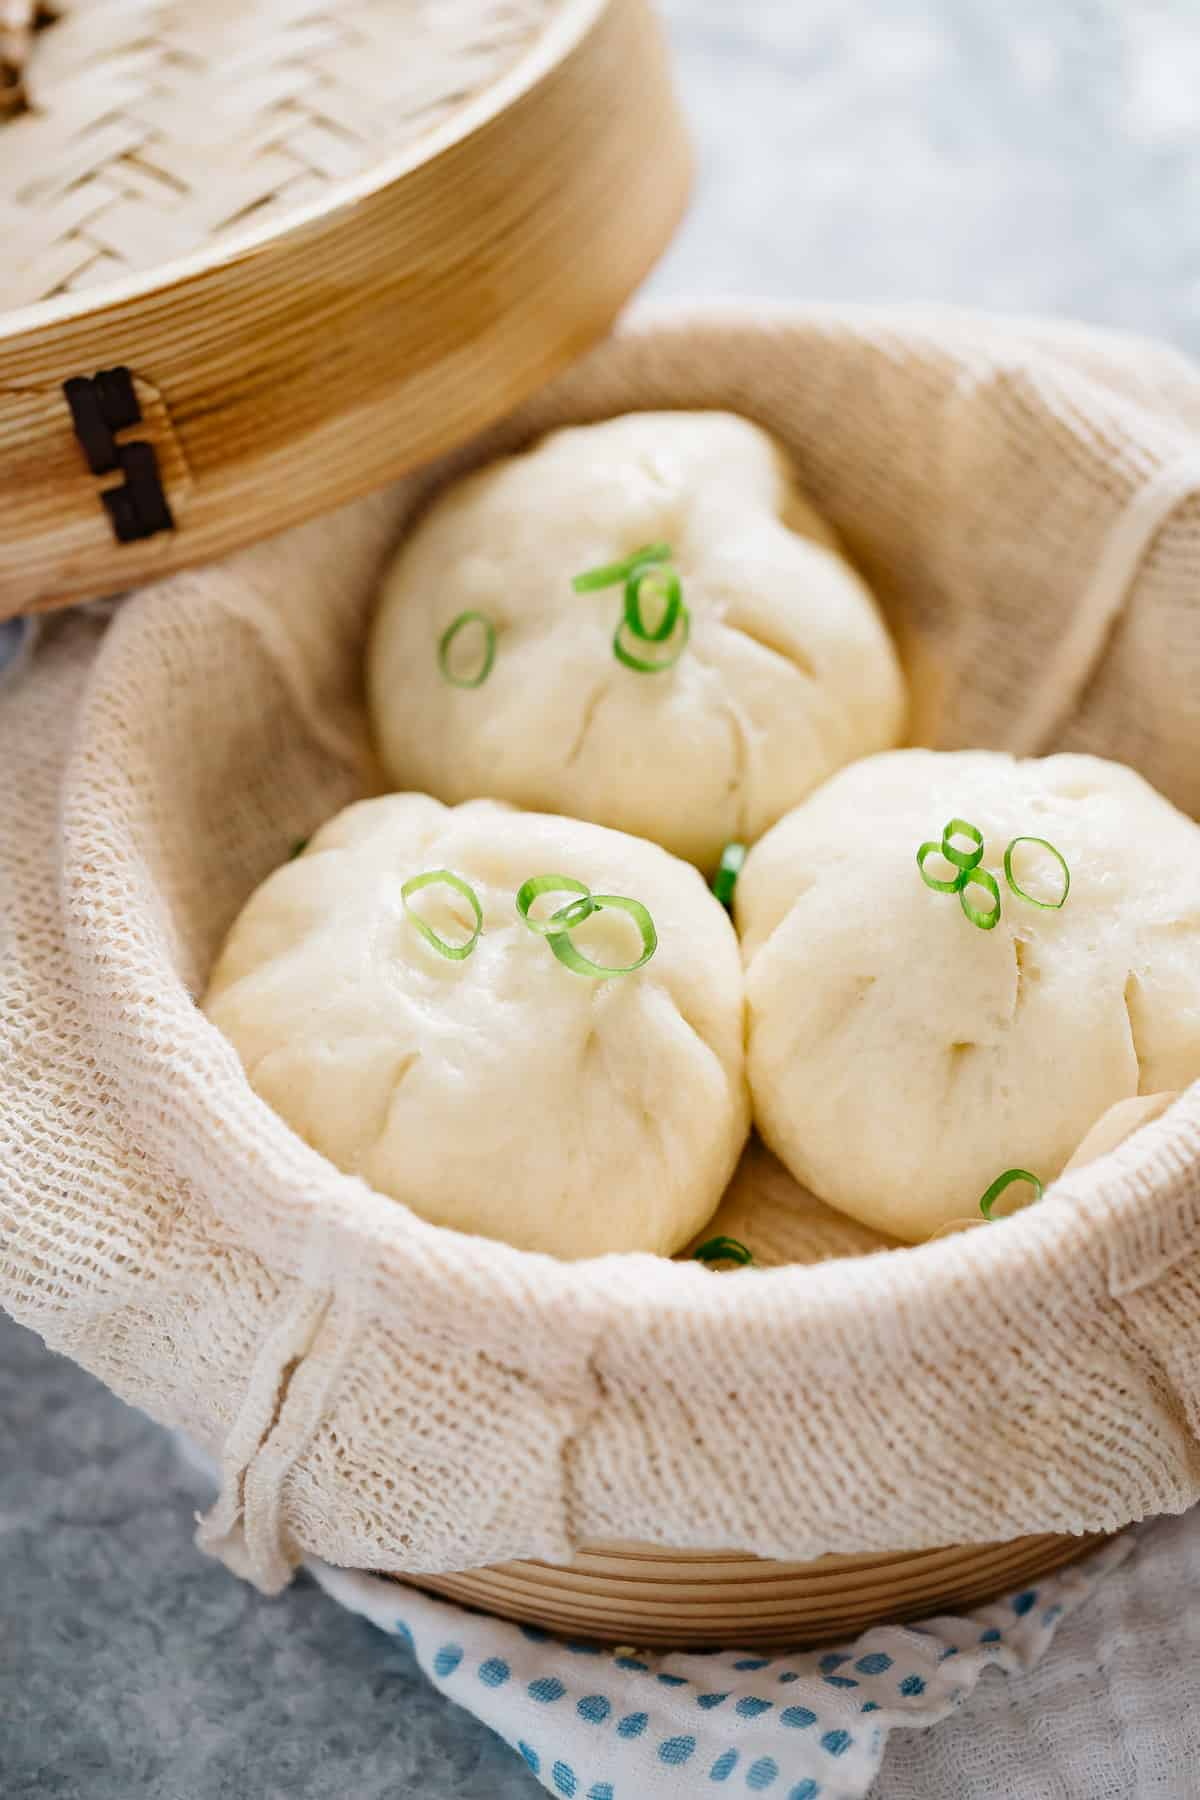 three steamed pork buns served in a bamboo steamer